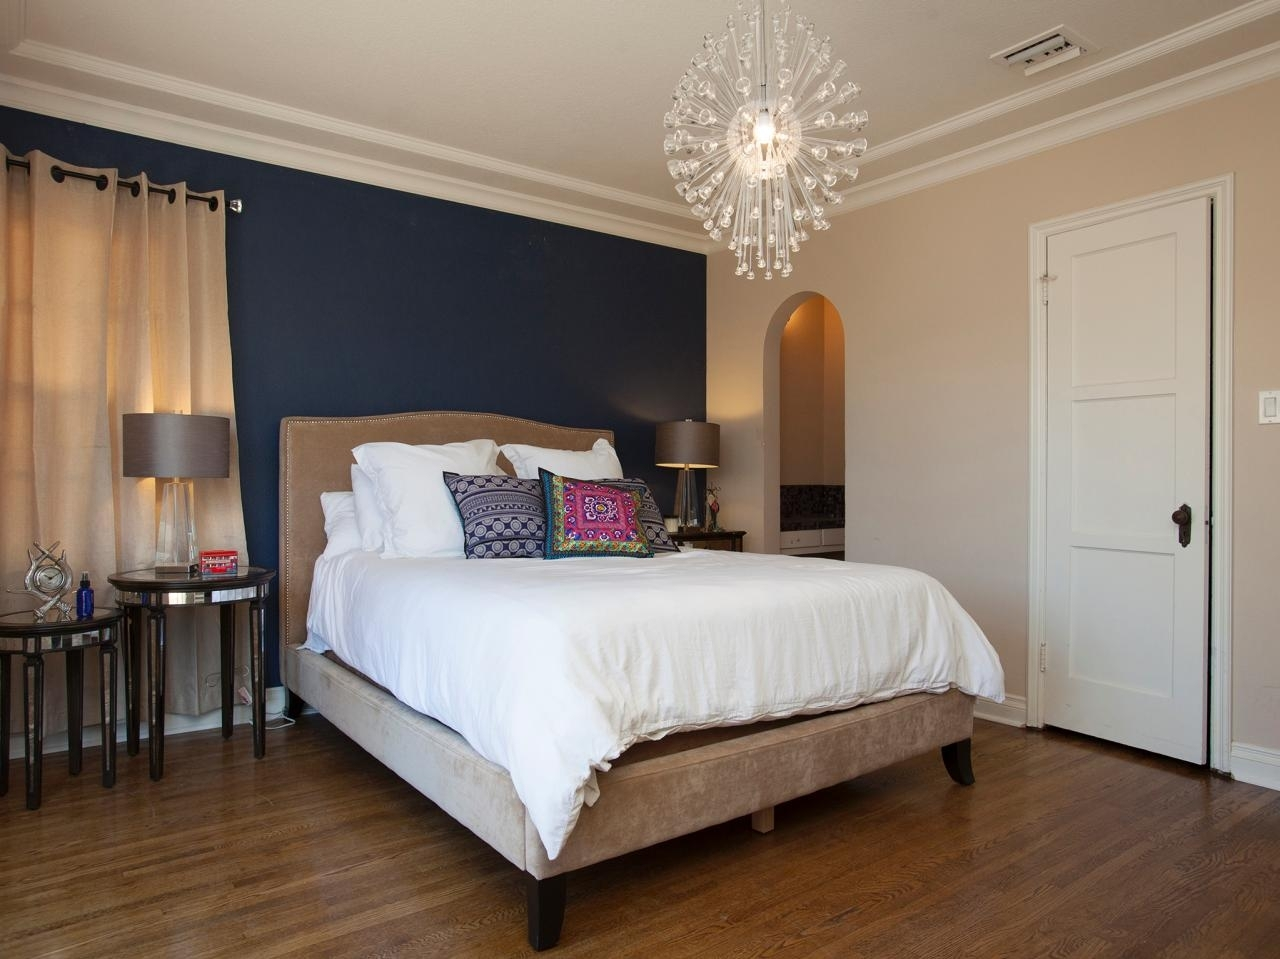 Bedroom | Dark Blue Wall Accent With Burlywood Color Base Inside Most Recently Released Navy Wall Accents (View 4 of 15)